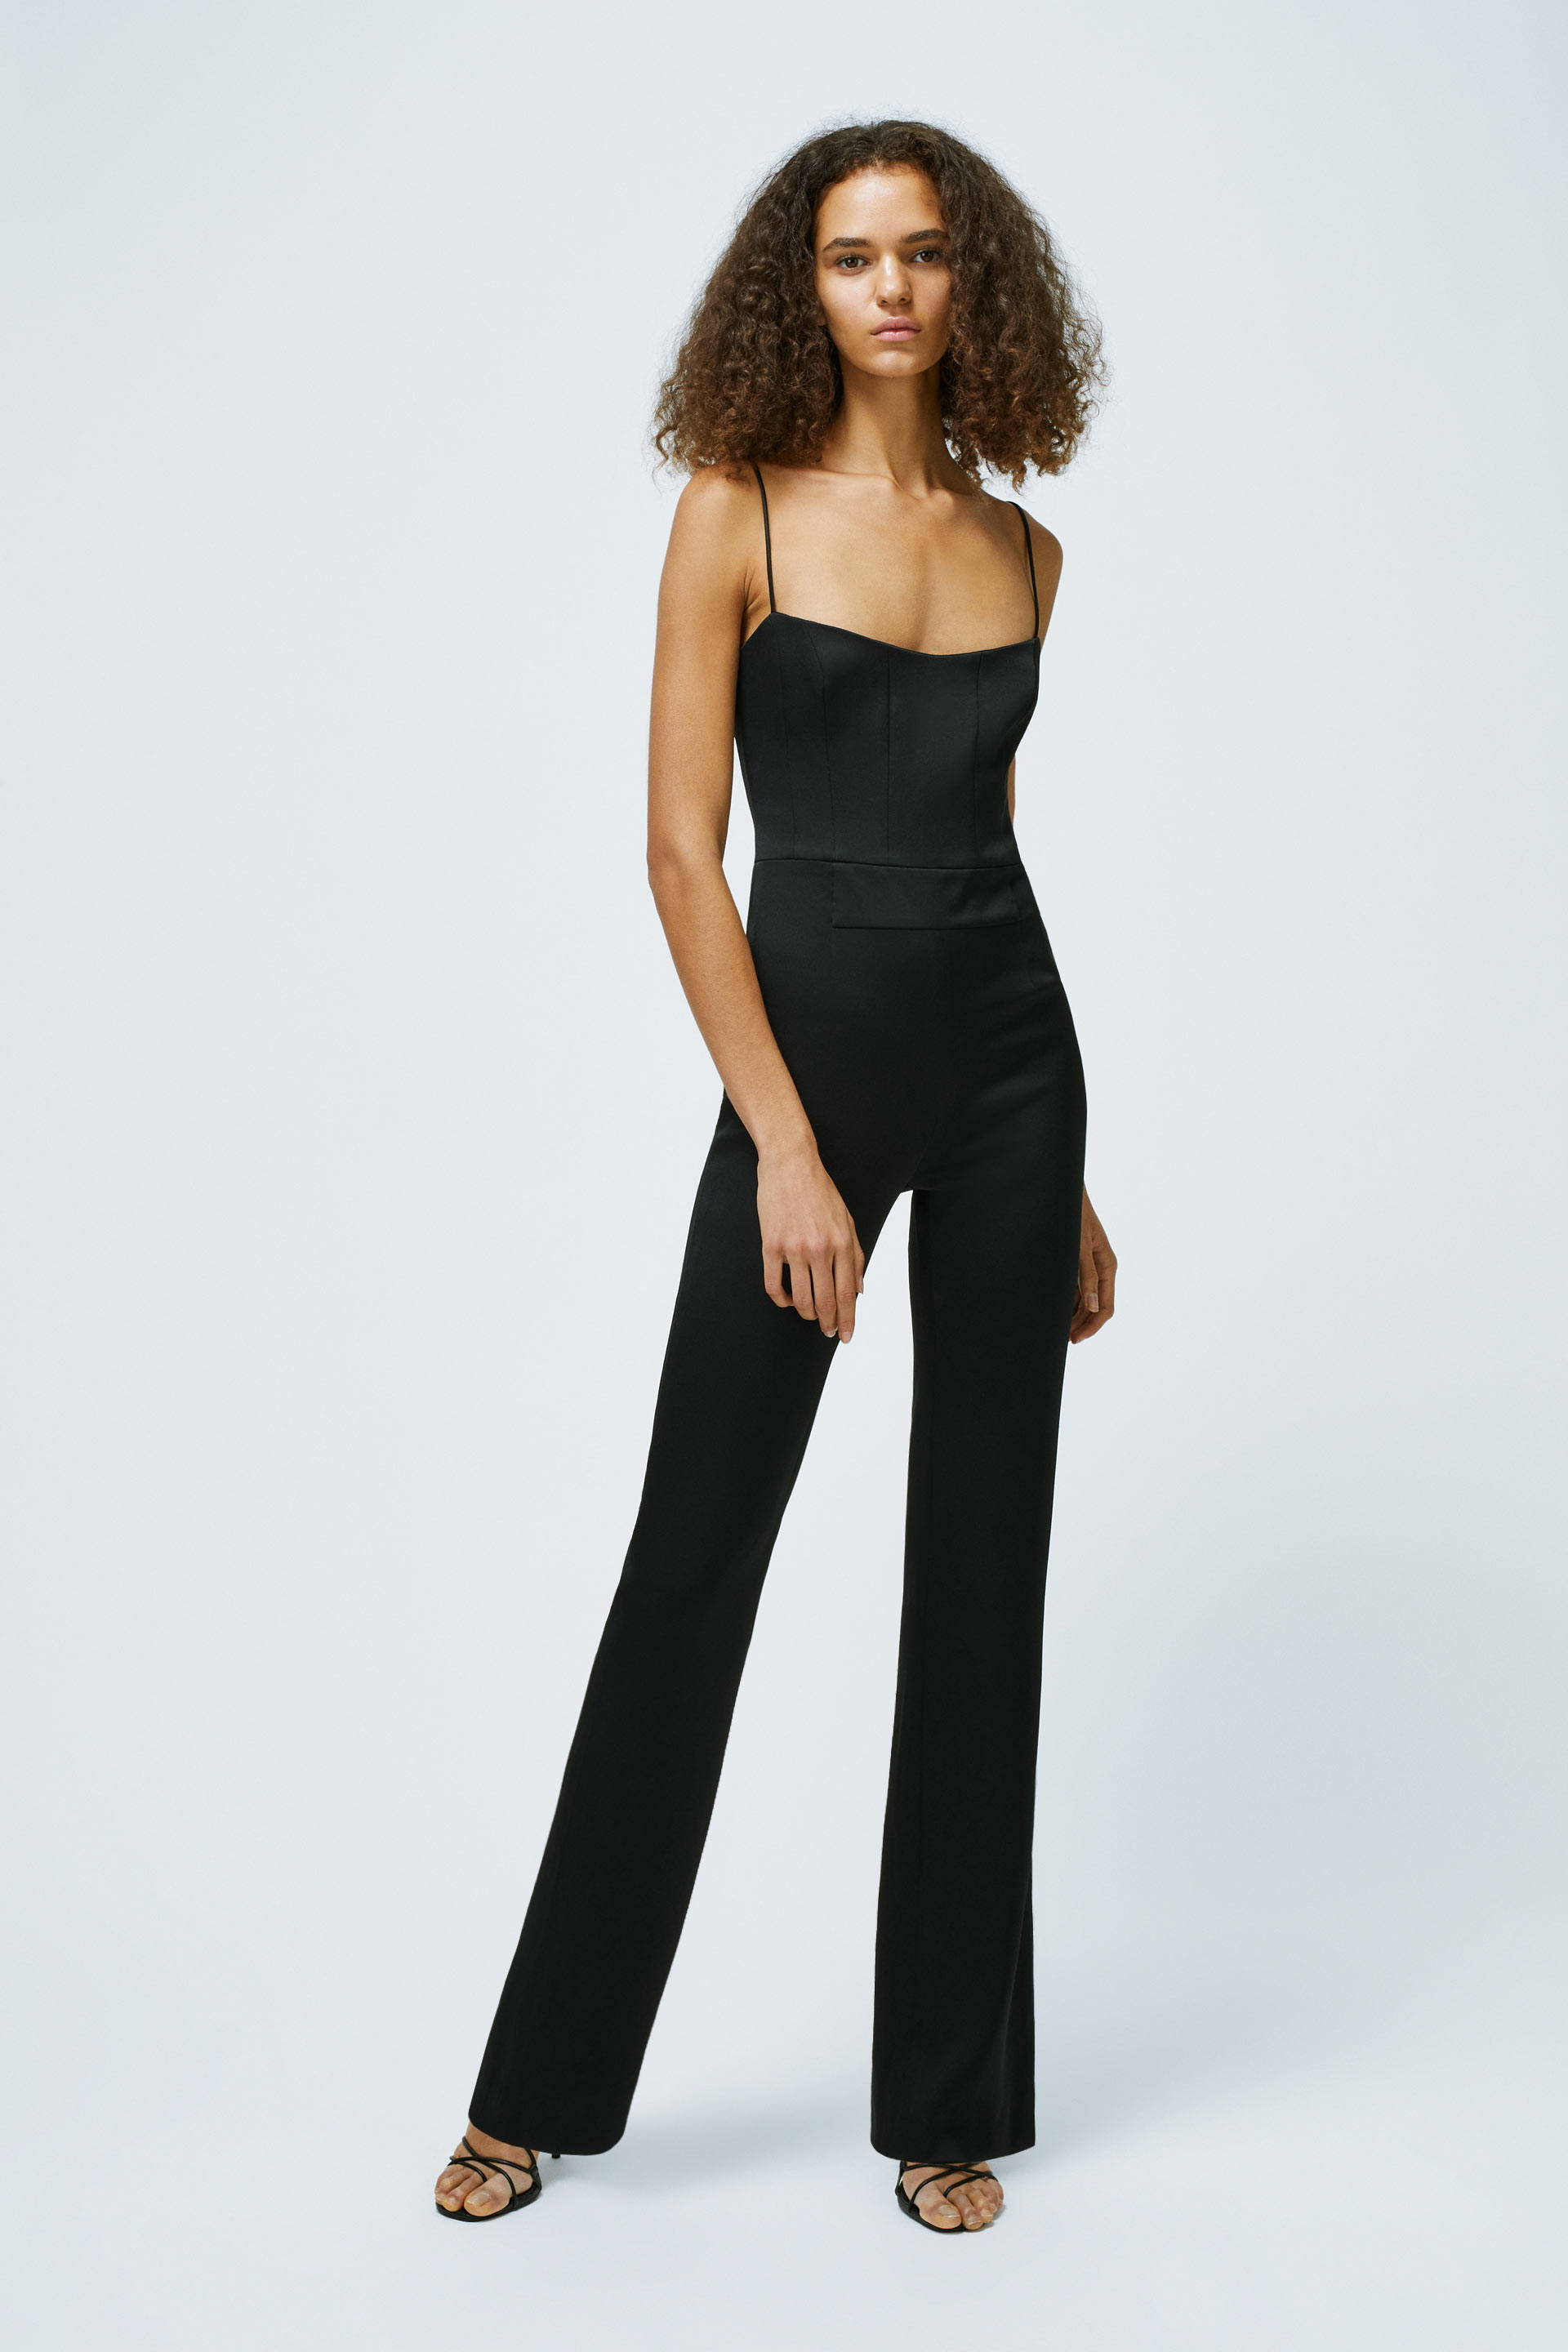 Galvan London Spaghetti Strap Beaded Black Jumpsuit